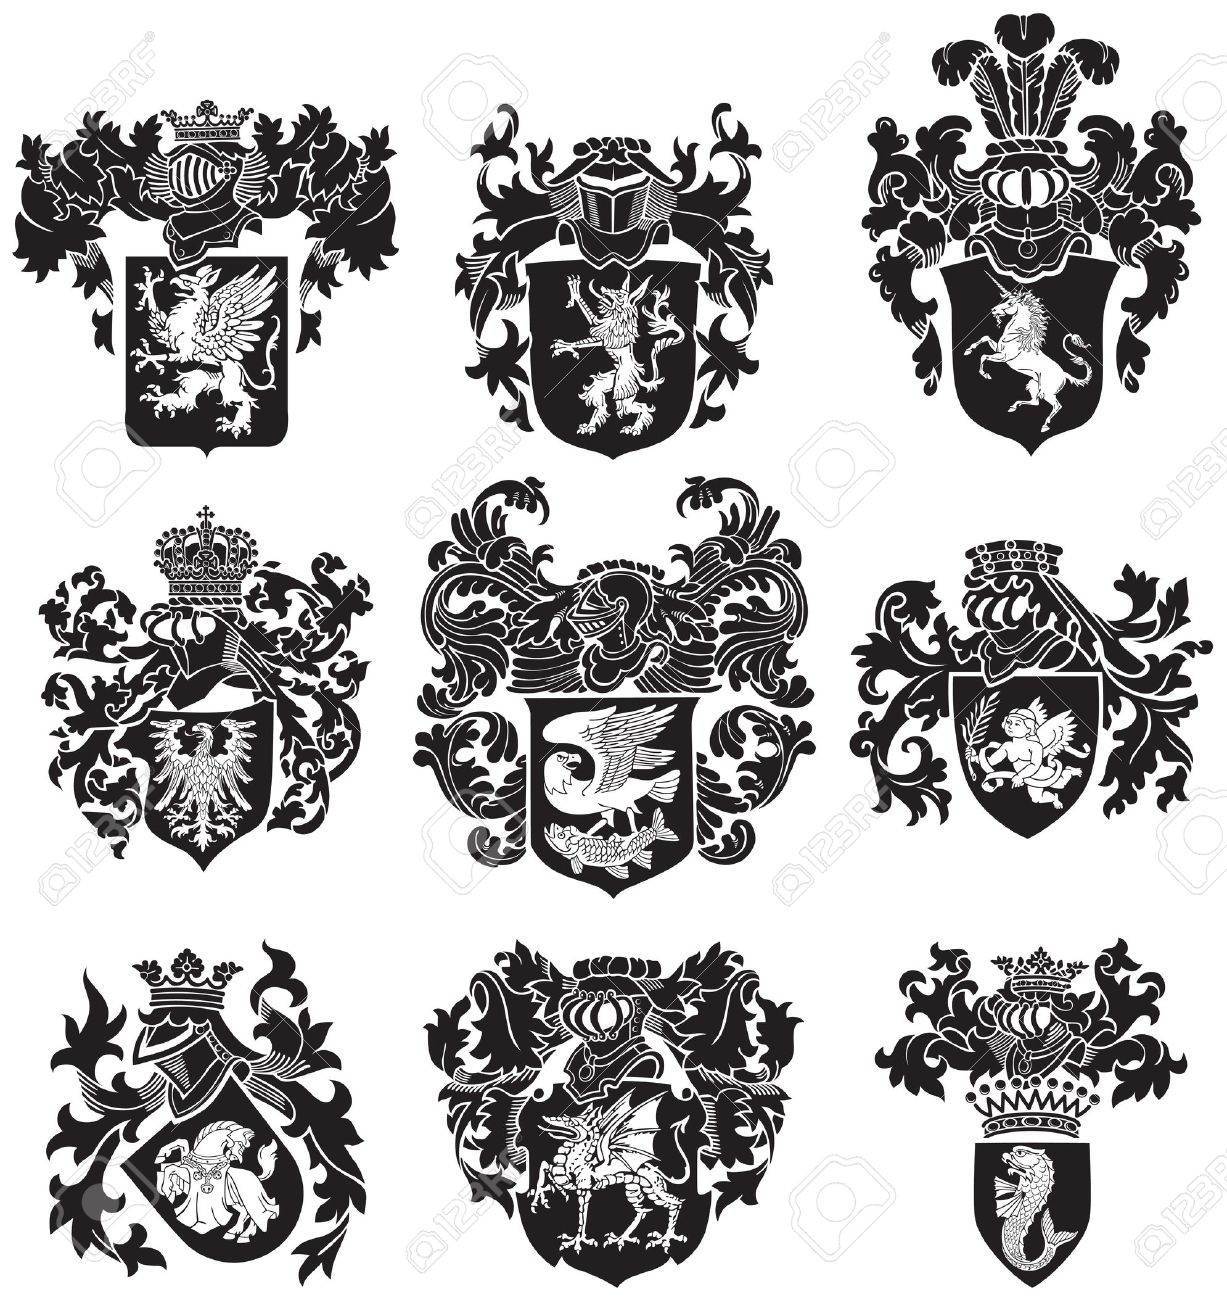 image of black medieval heraldic silhouettes, executed in woodcut style, isolated on white background Stock Vector - 21917780